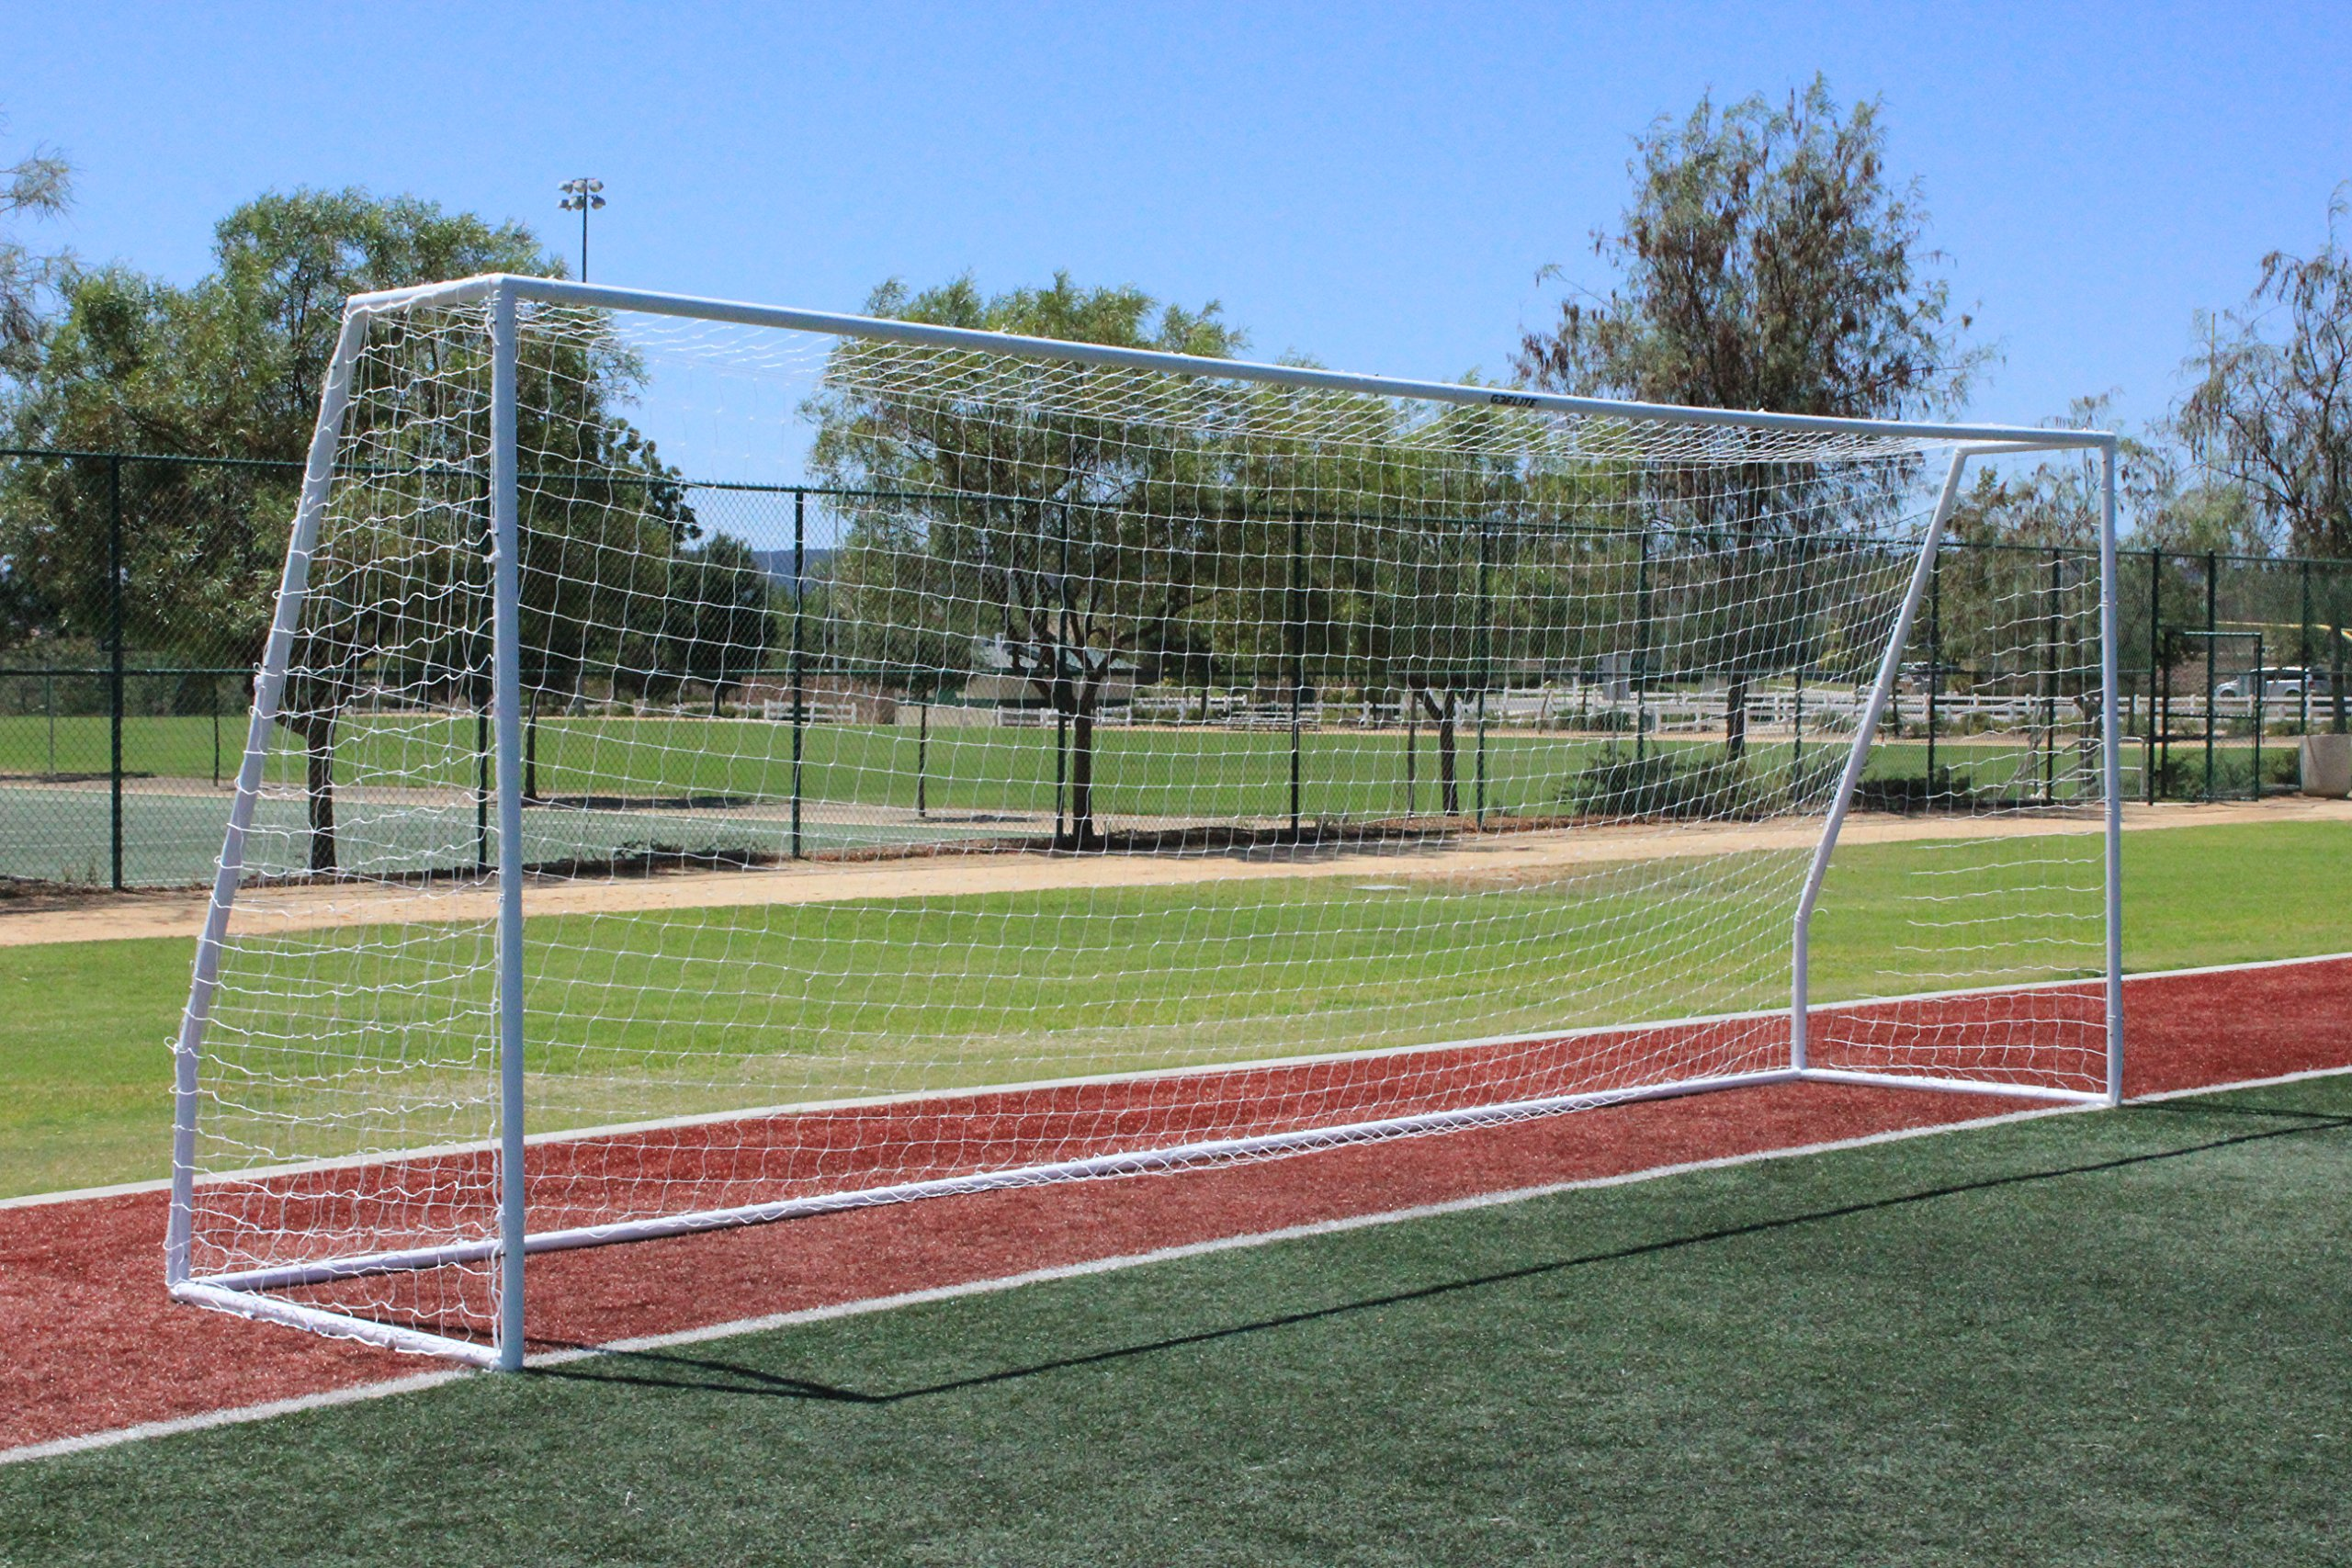 G3Elite Pro 24x8 Regulation Soccer Goal (Discounted Less Than Perfect Item), (1) Net, Strongest Portable Steel Post Design w/Patented Corrosion Resistant Coating, 8'x24'x2'x4½'